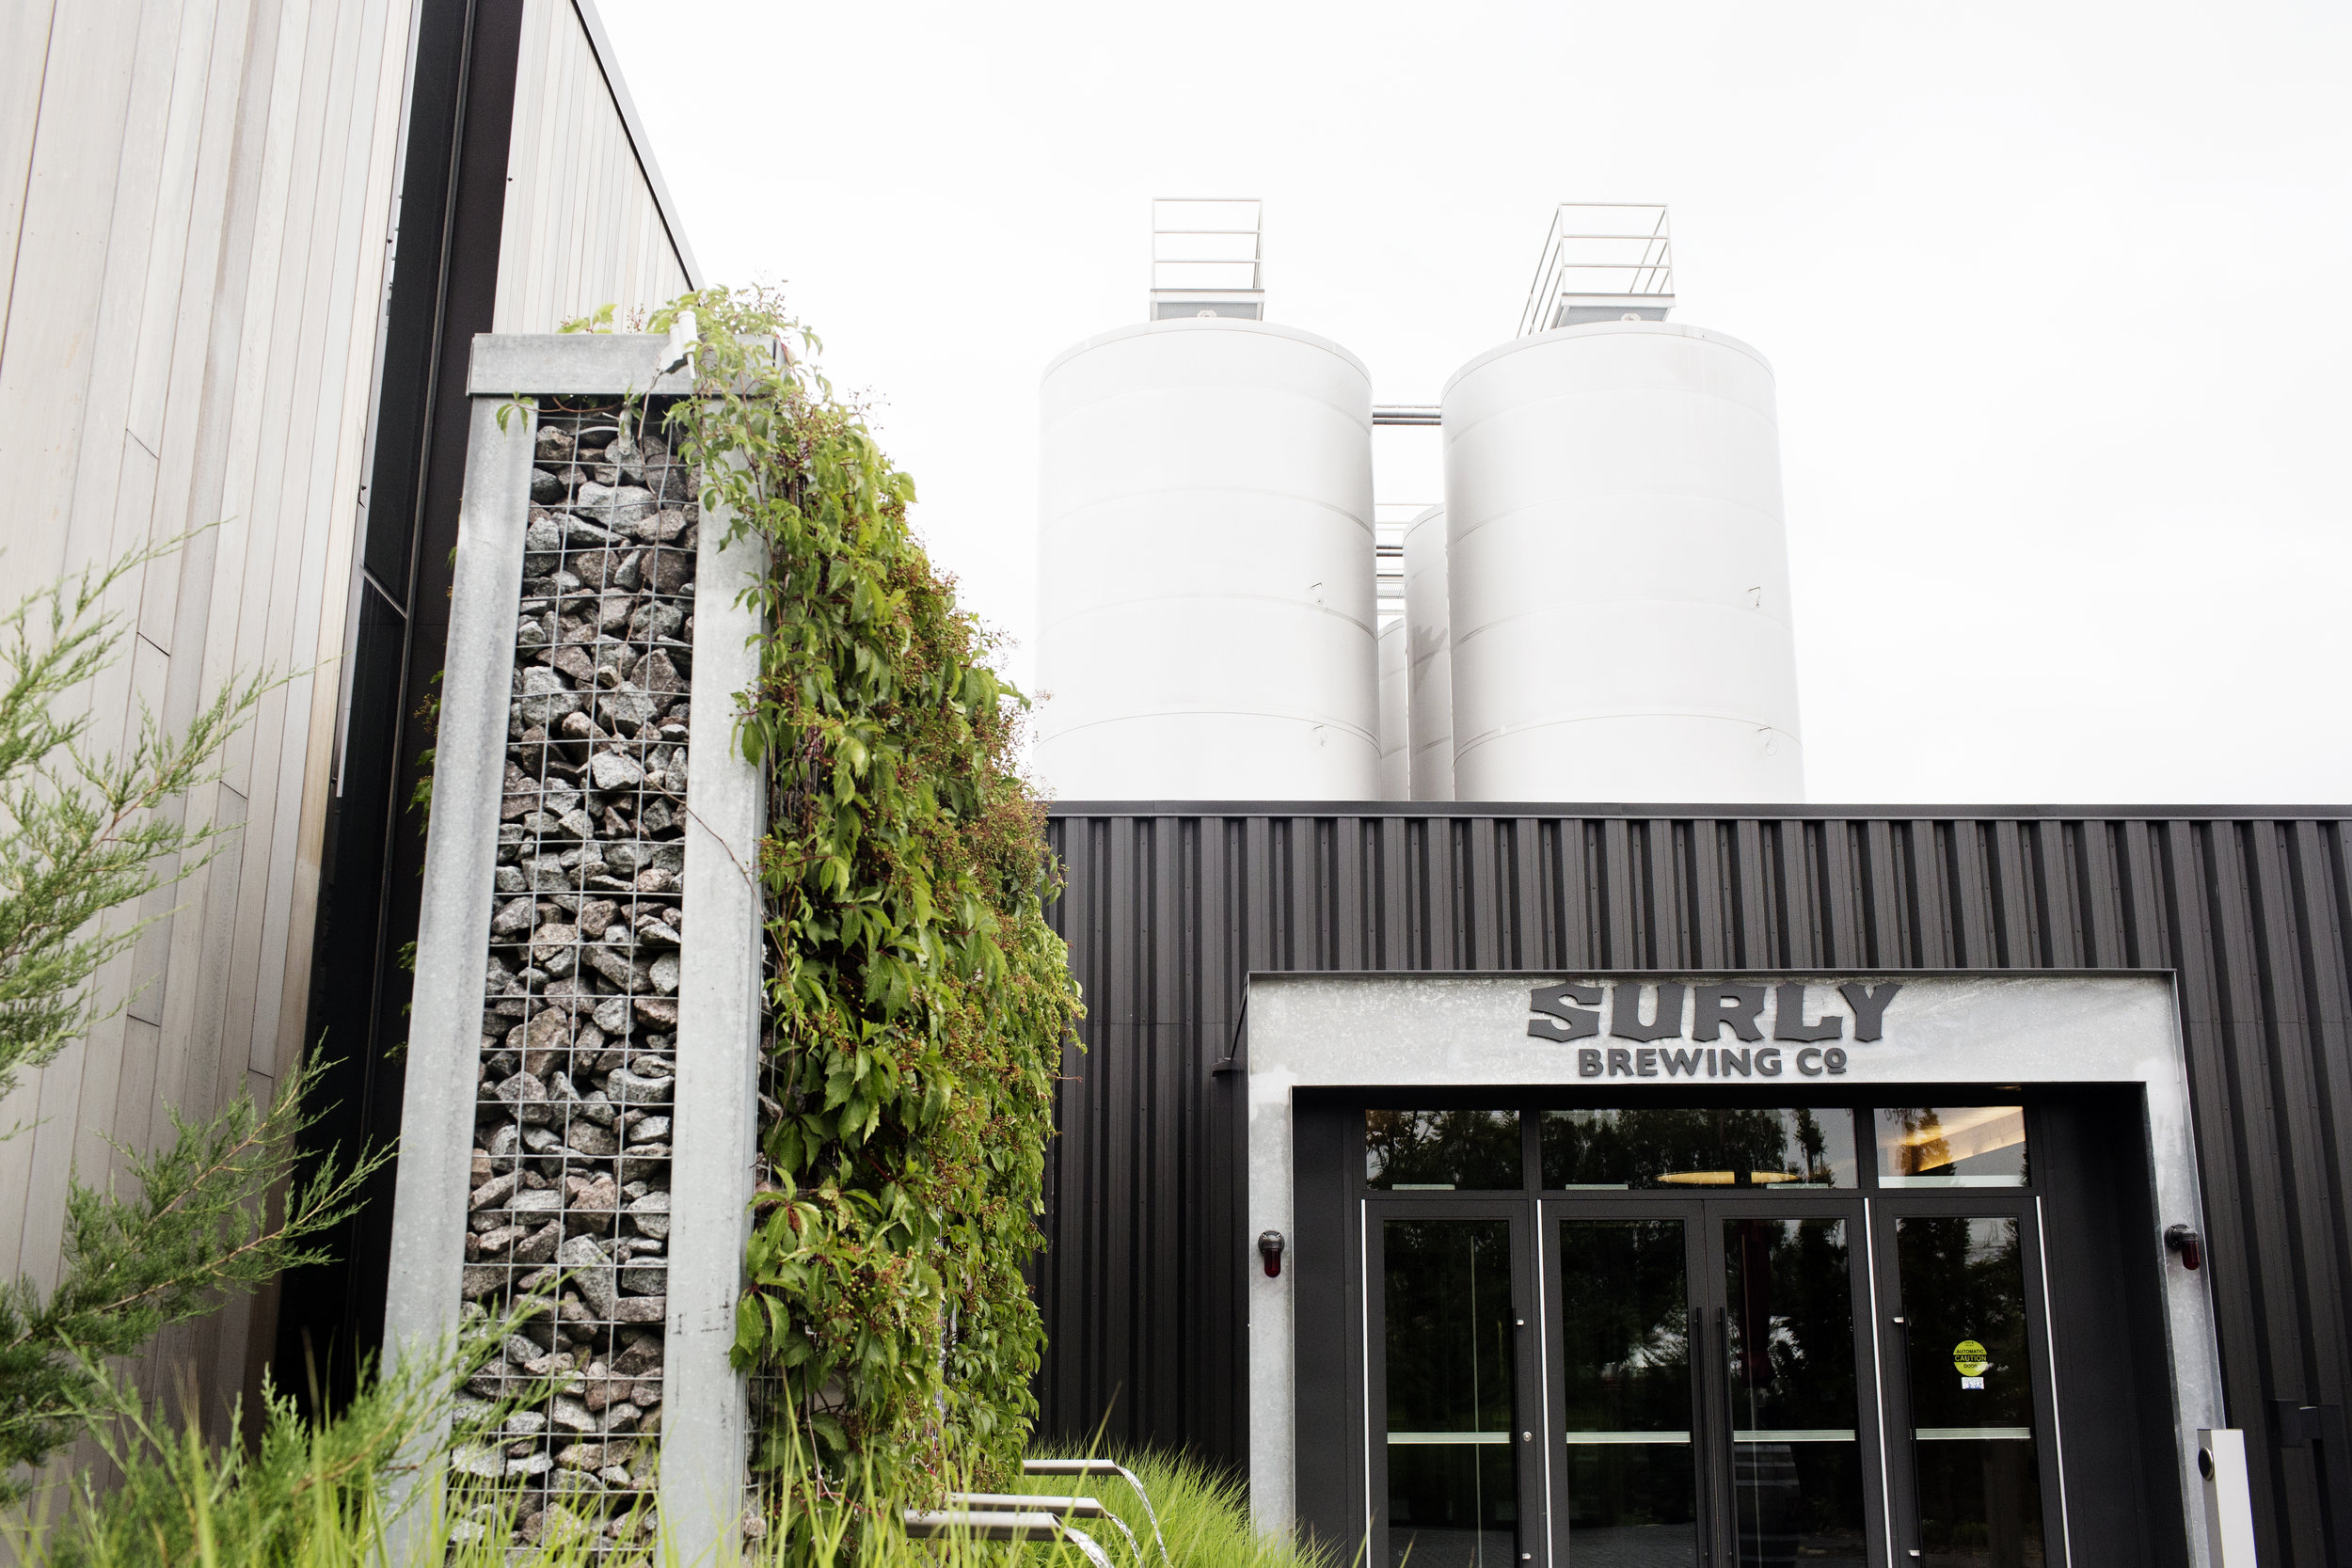 Surly Brewing Company - See Surly from the inside with a guided, 30-minute tour. Learn about the history, the building, the process, and Surly's place in the community. Self-guided tours of the building's public spaces will also be available. Guided tours begin at 10:00 am; Surly's public spaces open at 11:00 am. Steven Dwyer, AIA LEED AP BD+C, architect at HGA who headed Surly's design, will be leading architecture-focused tours at 11:00 am and 12:00 pm on Saturday and Sunday.